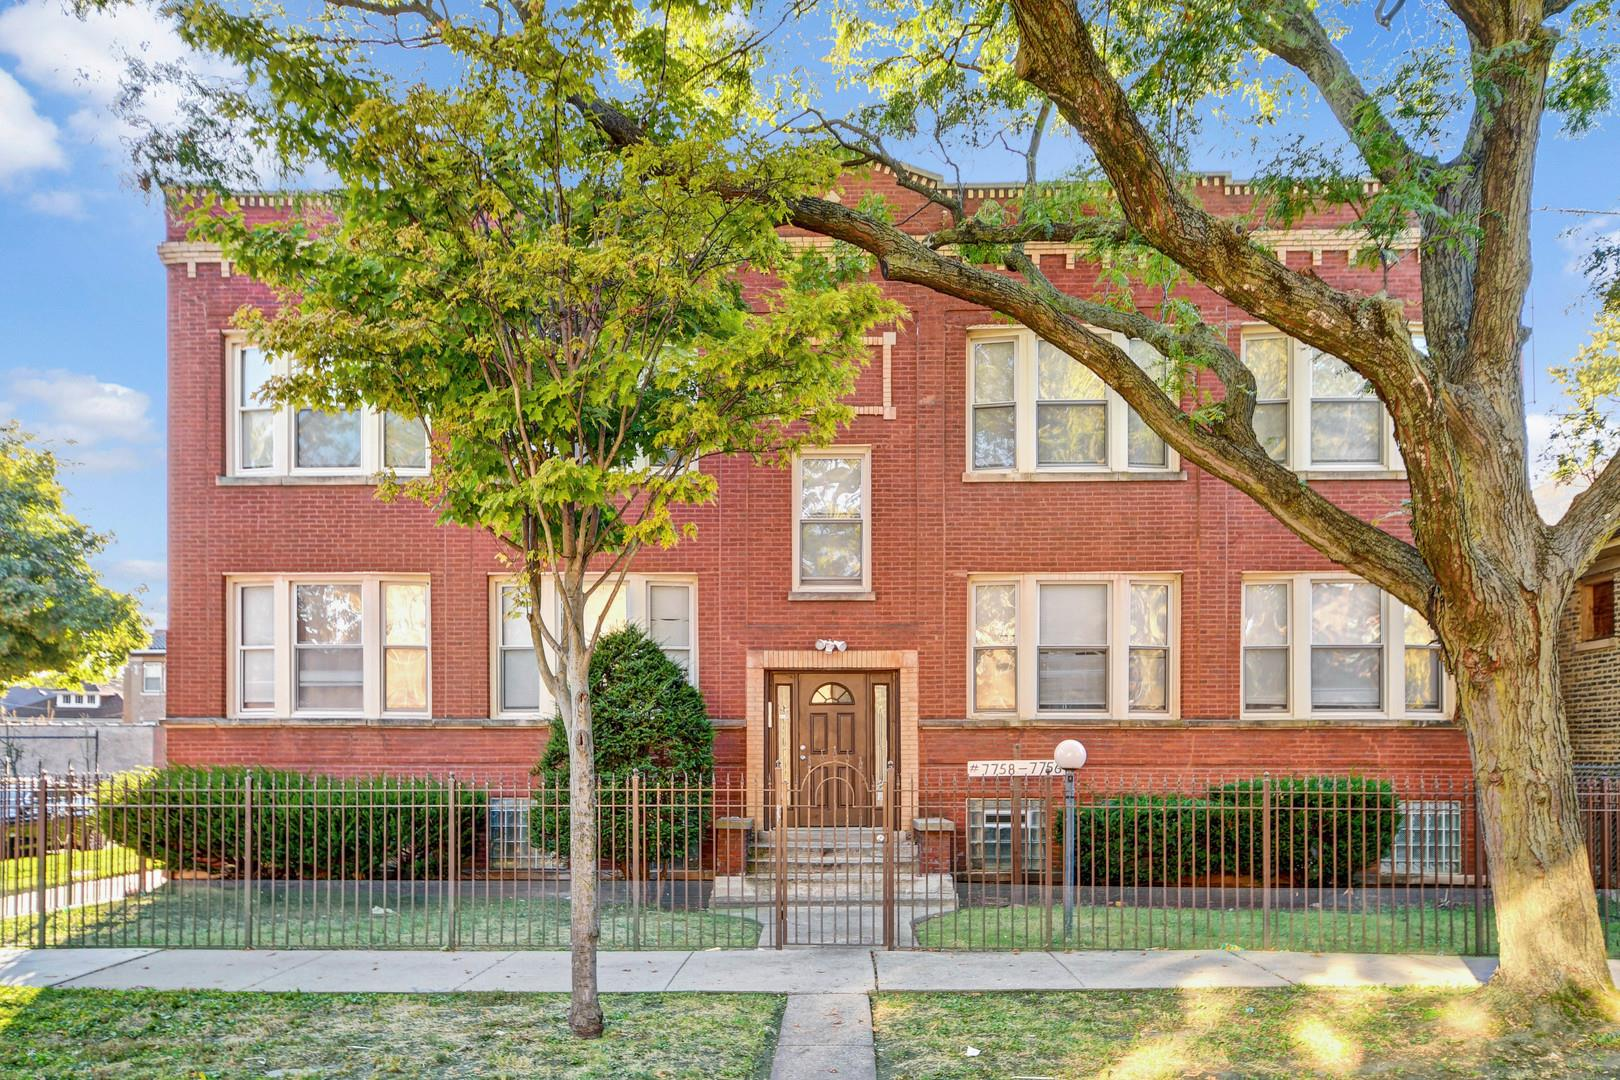 7756-58 S Evans Avenue, Chicago, IL 60619 - #: 10897241